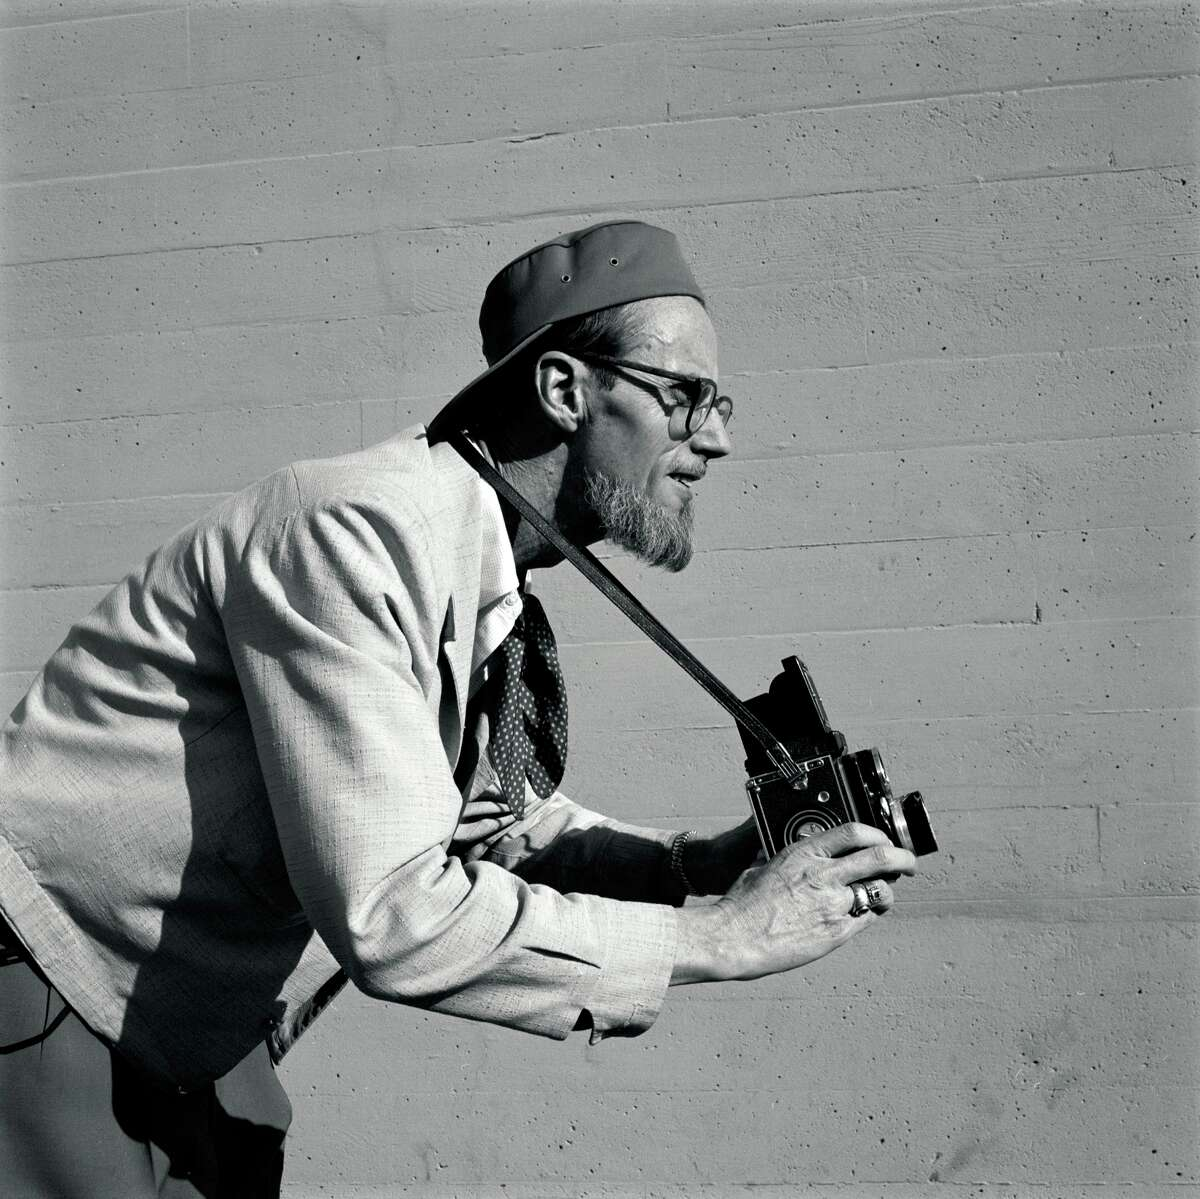 """Earl Leaf, known as the """"Beatnik Photographer,"""" strikes animated poses for Petersen Publishing photographer Bob D'Olivo. Leaf began his photography career in the 1930s but became known for his work in the 1950s and 1960s with starlets like Marilyn Monroe."""